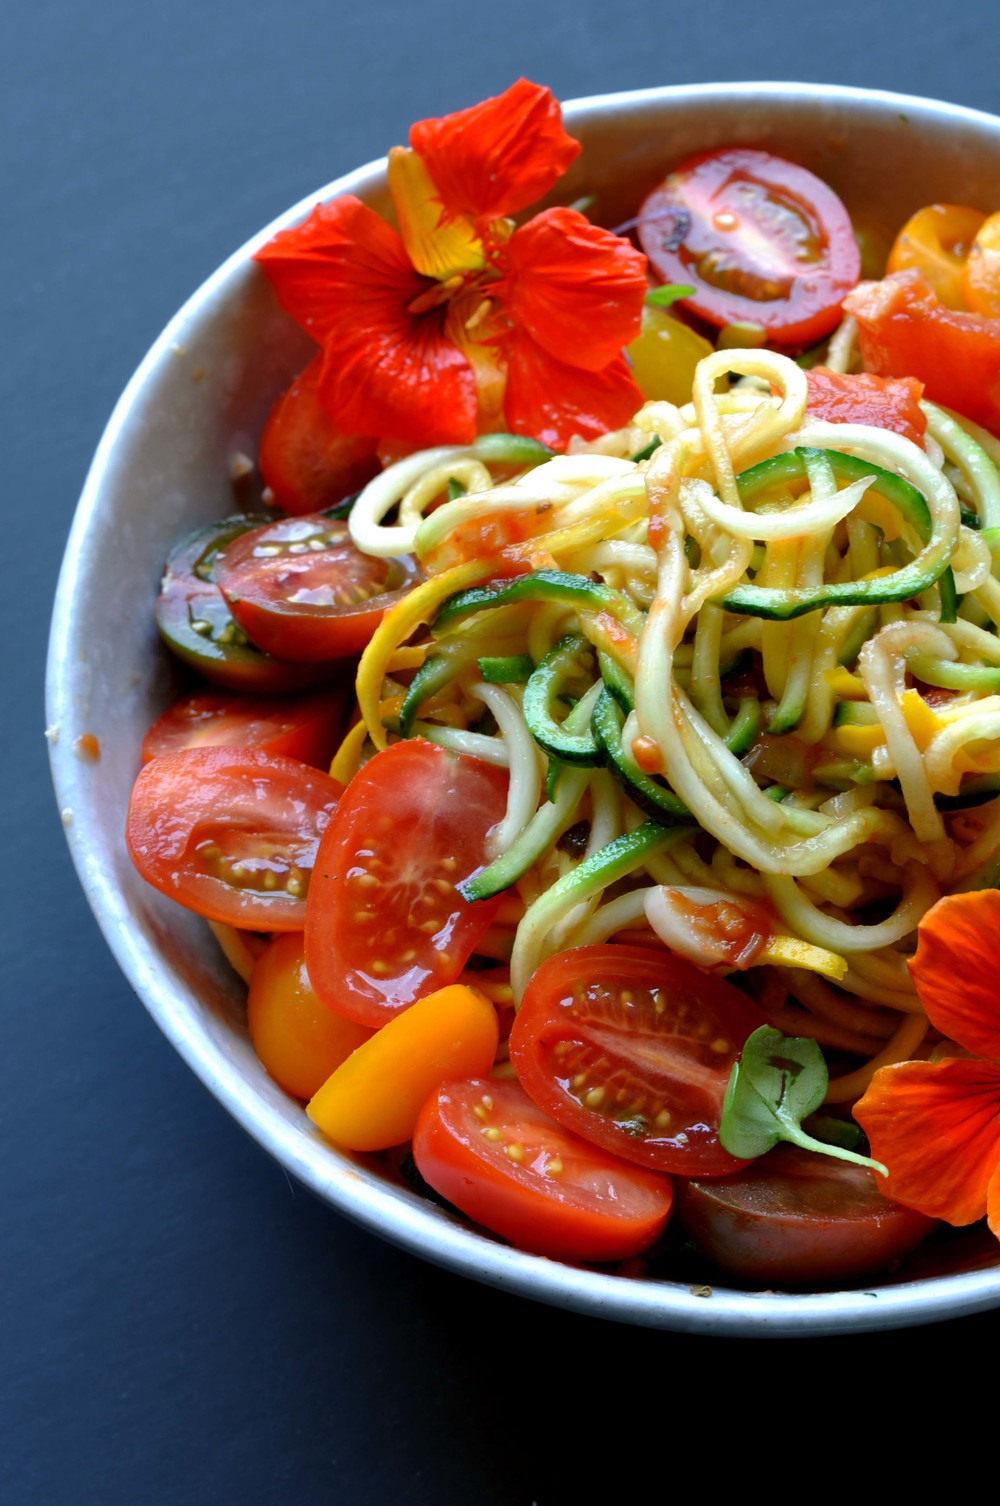 Zucchini Noodles (Zoodles) with Roasted Tomato Sauce & Edible Flowers. Vegan. Vegetarian. Healthy & Quick Recipe.